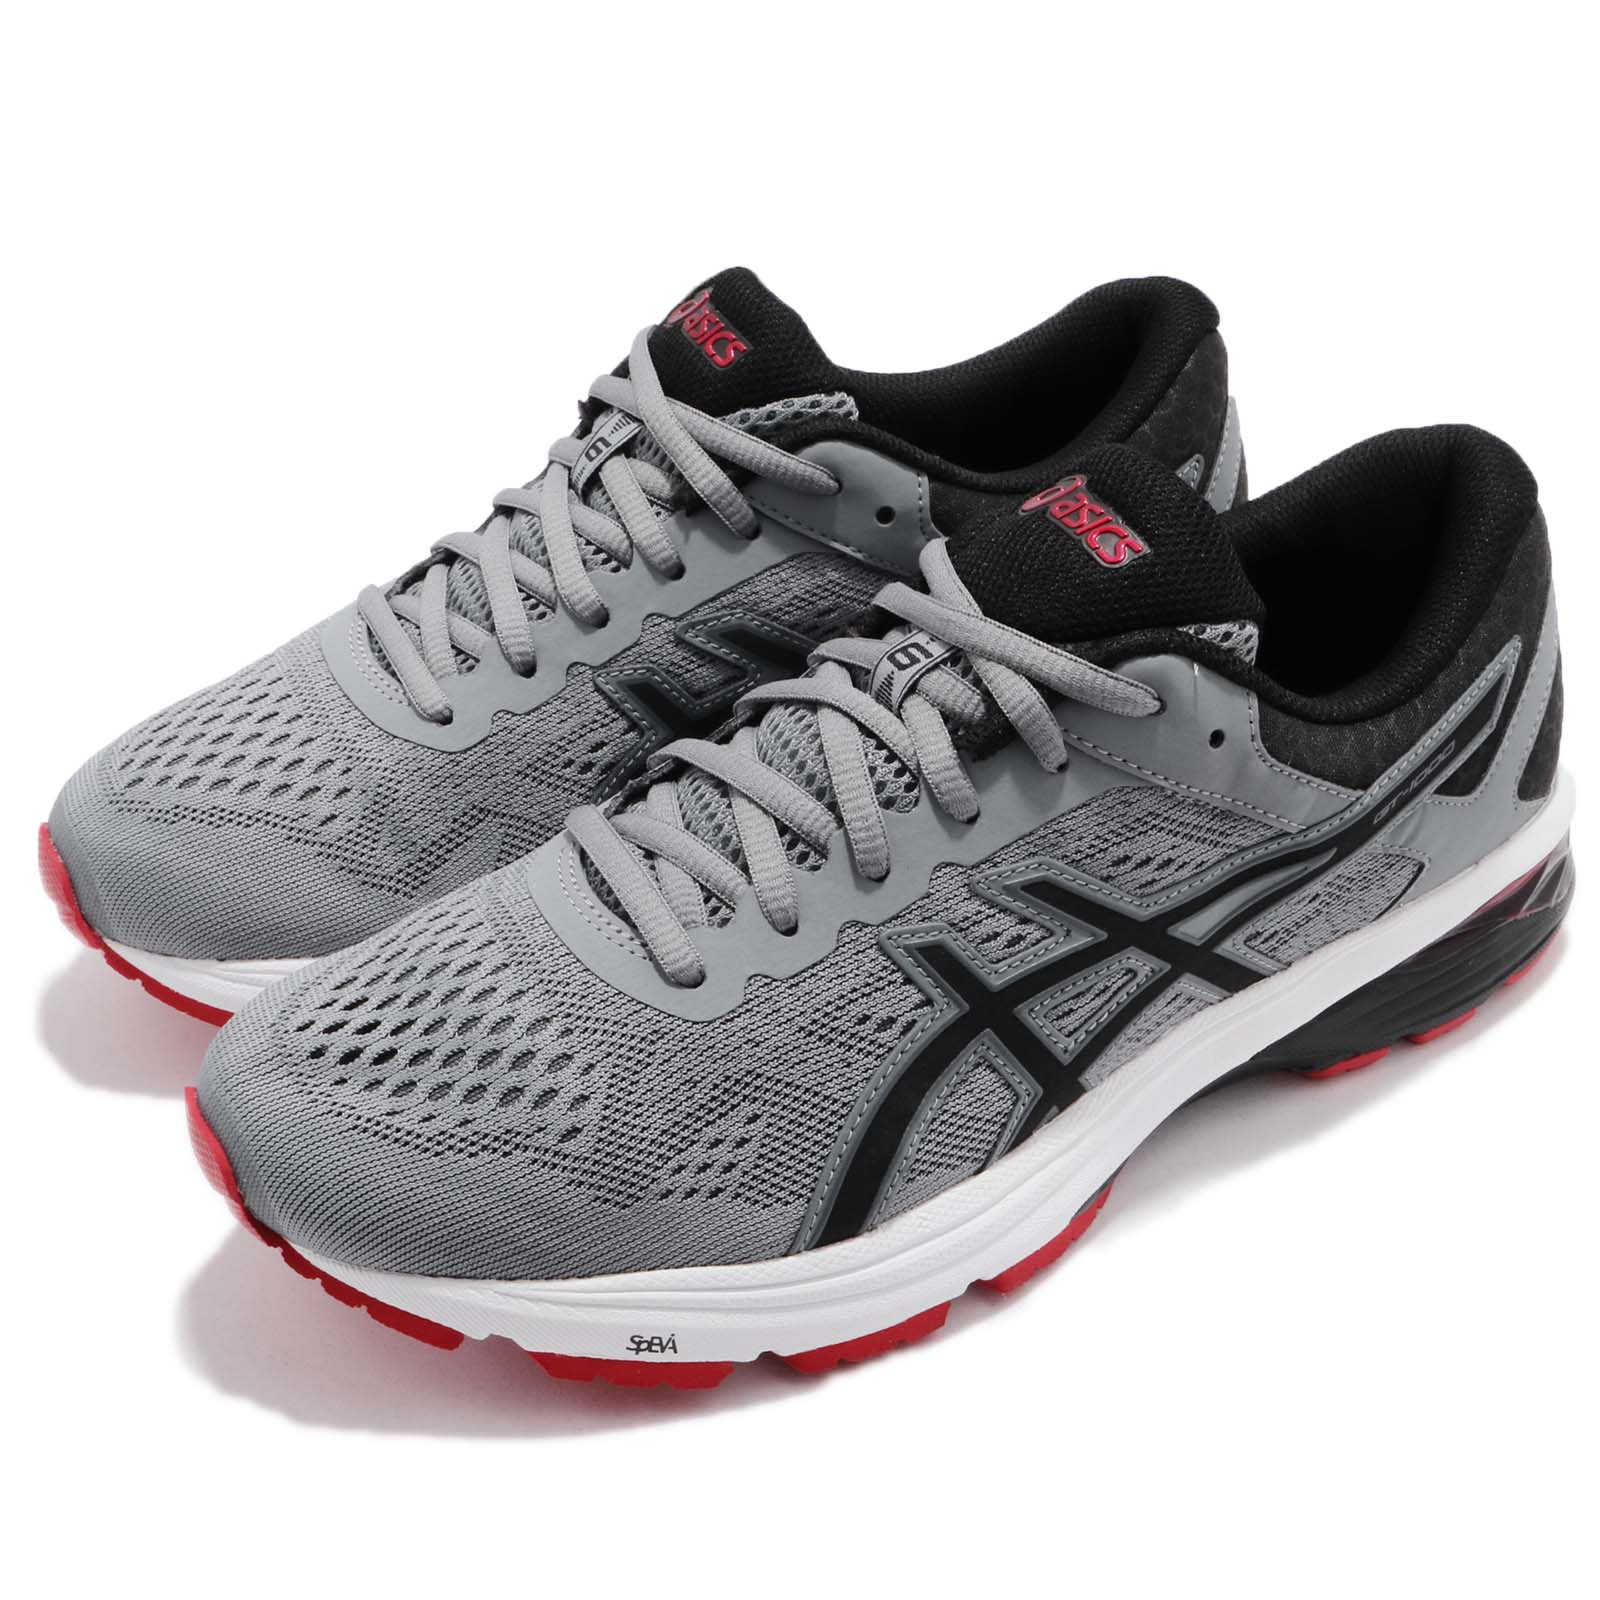 Details about Asics GT 1000 6 Grey Black Red Men Gear Road Running Shoes Sneakers T7A4N 1190